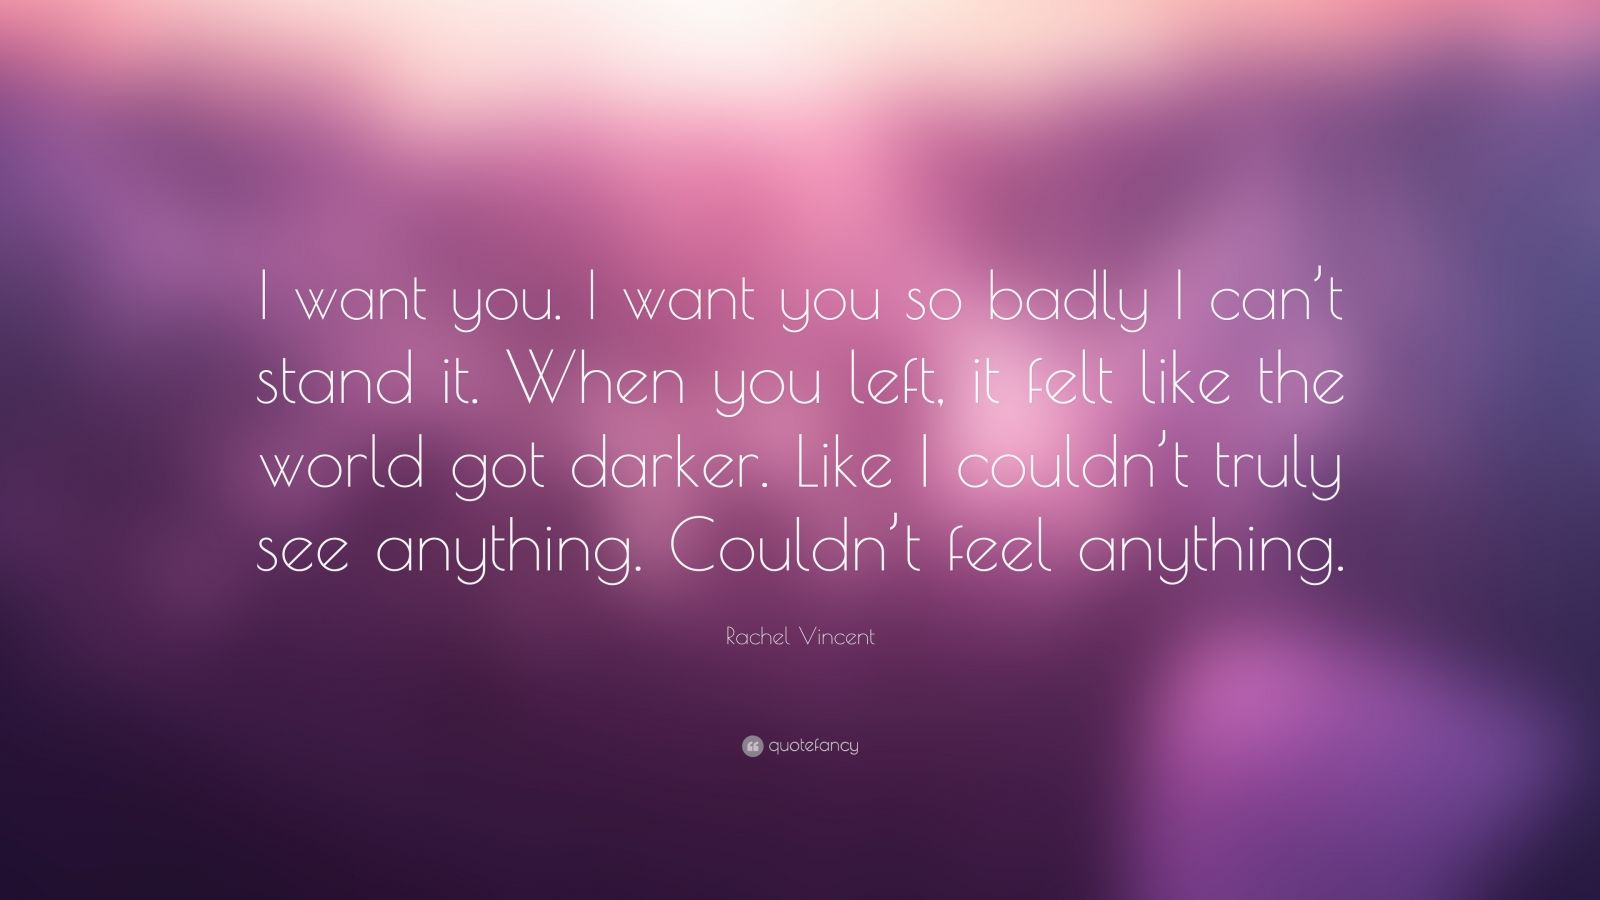 """Rachel Vincent Quote: """"I want you. I want you so badly I can't stand it. When you left, it felt like the world got darker. Like I couldn't truly see anything. Couldn't feel anything."""""""